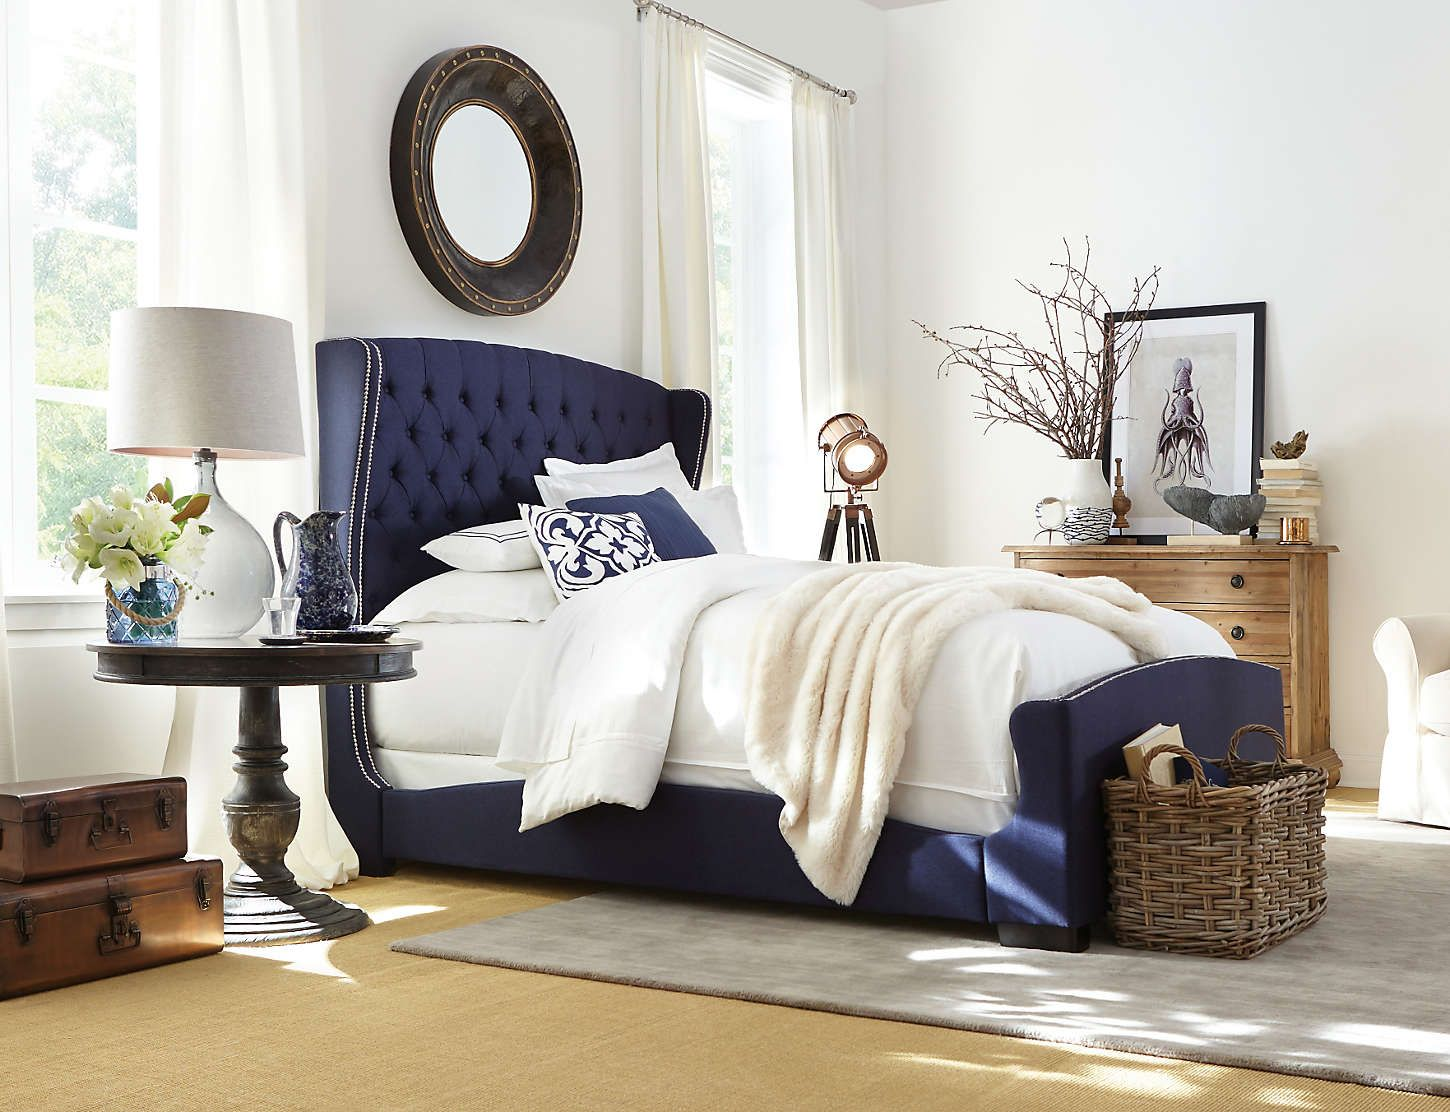 Naples Upholstered Bed Navy Blue Wrap Design Silhouette